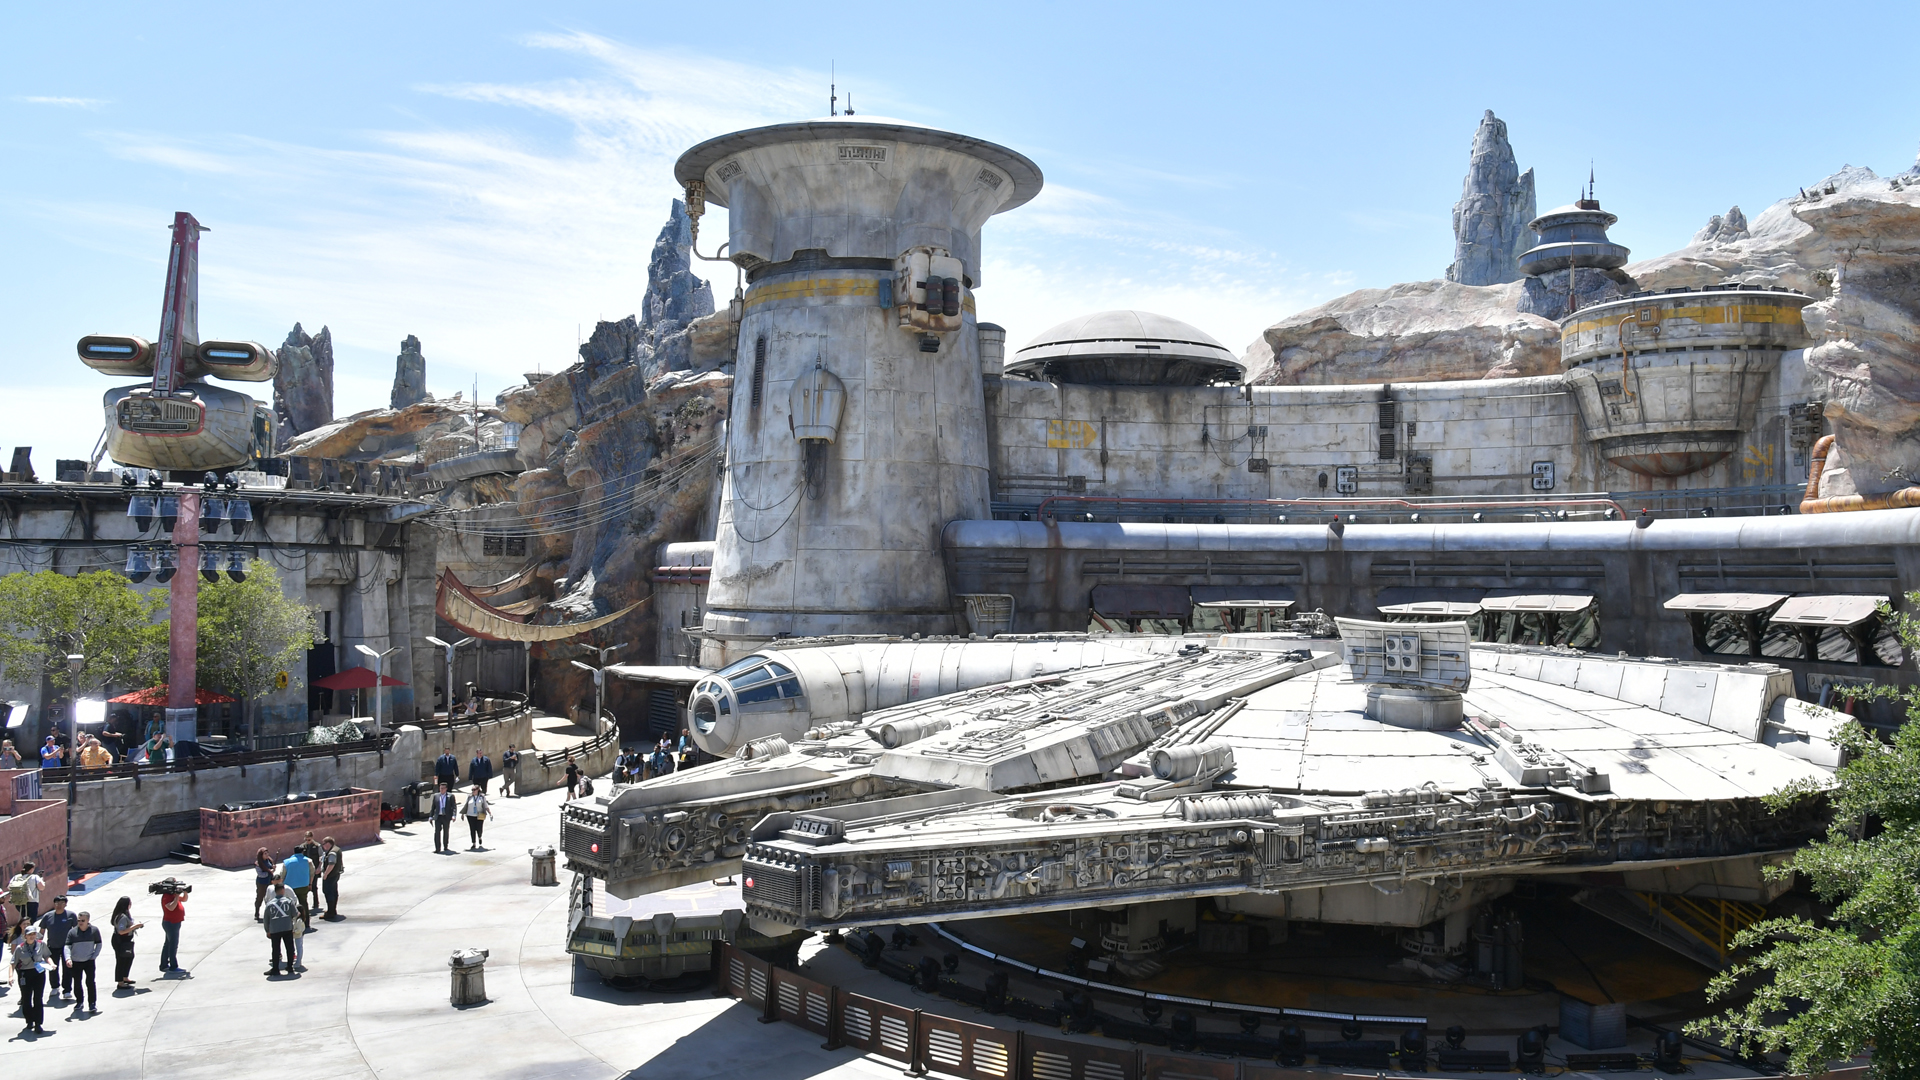 The Millennium Falcon ride in Disneyland's Star Wars: Galaxy's Edge is seen on May 29, 2019. (Credit: Amy Sussman/Getty Images)